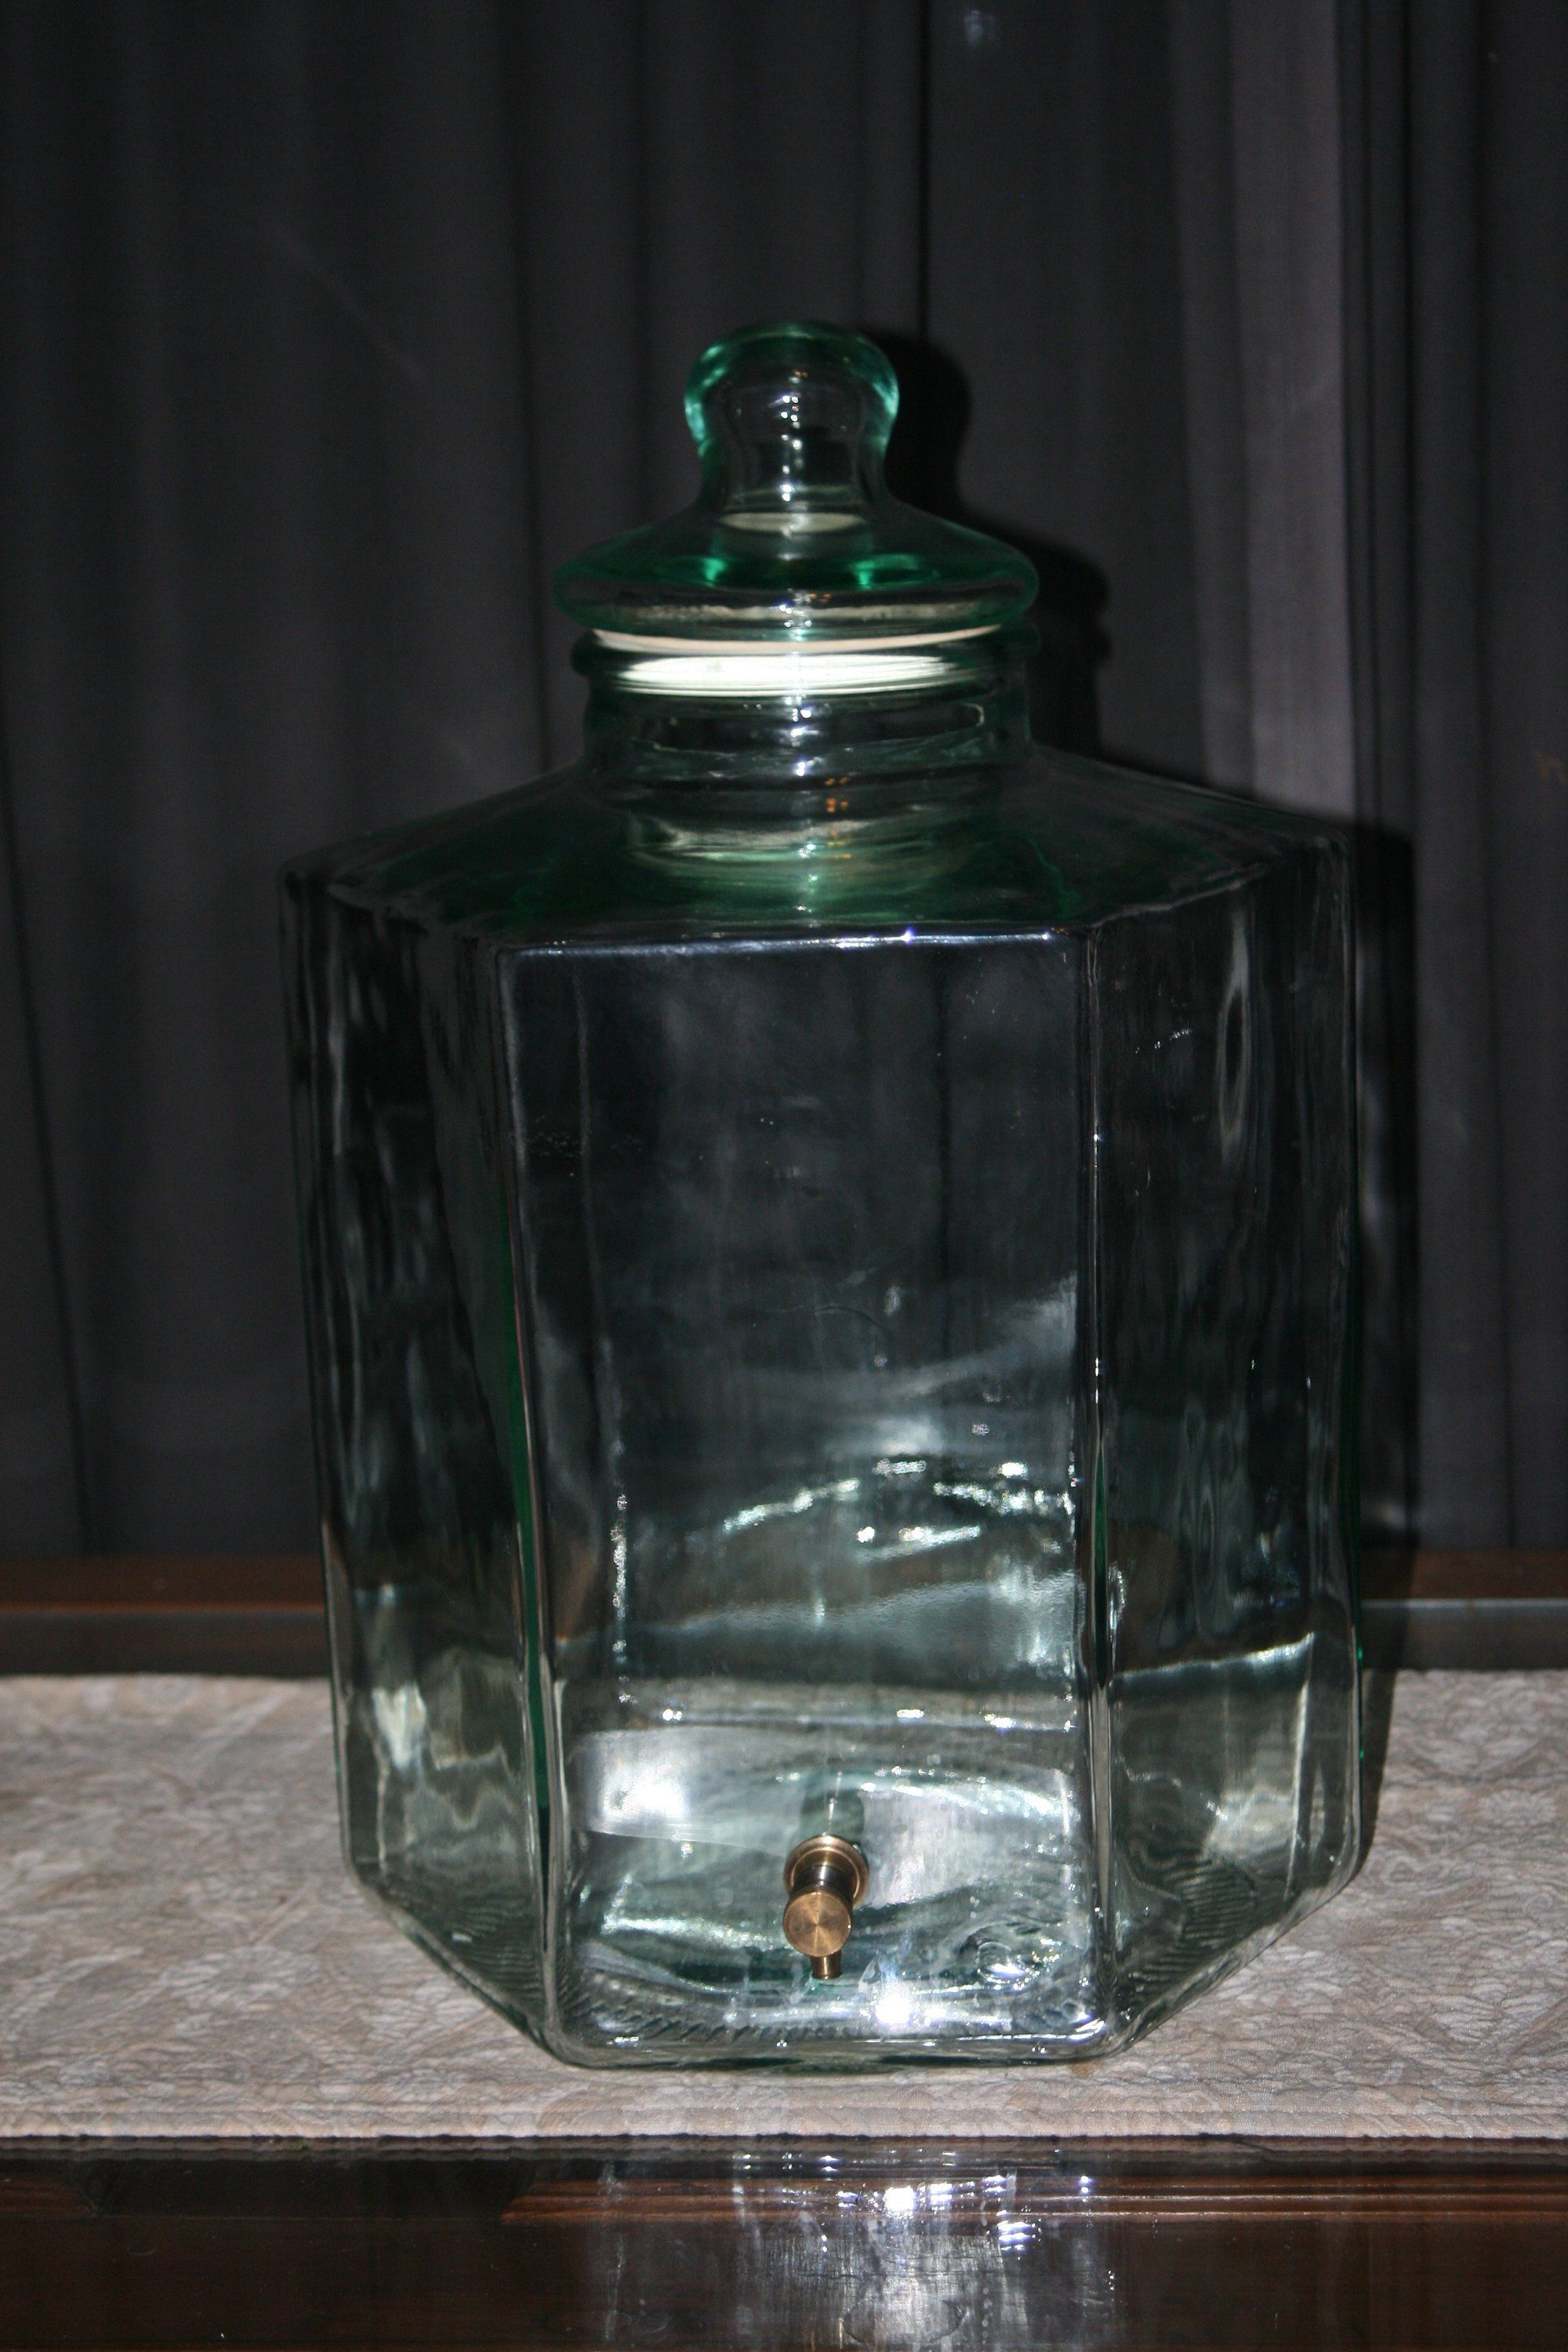 5 Gallon Glass Beverage Dispenser With Solid Brass Spigot By Theoldgreengarage On Etsy Glass Beverage Dispenser Drink Dispenser Bottle